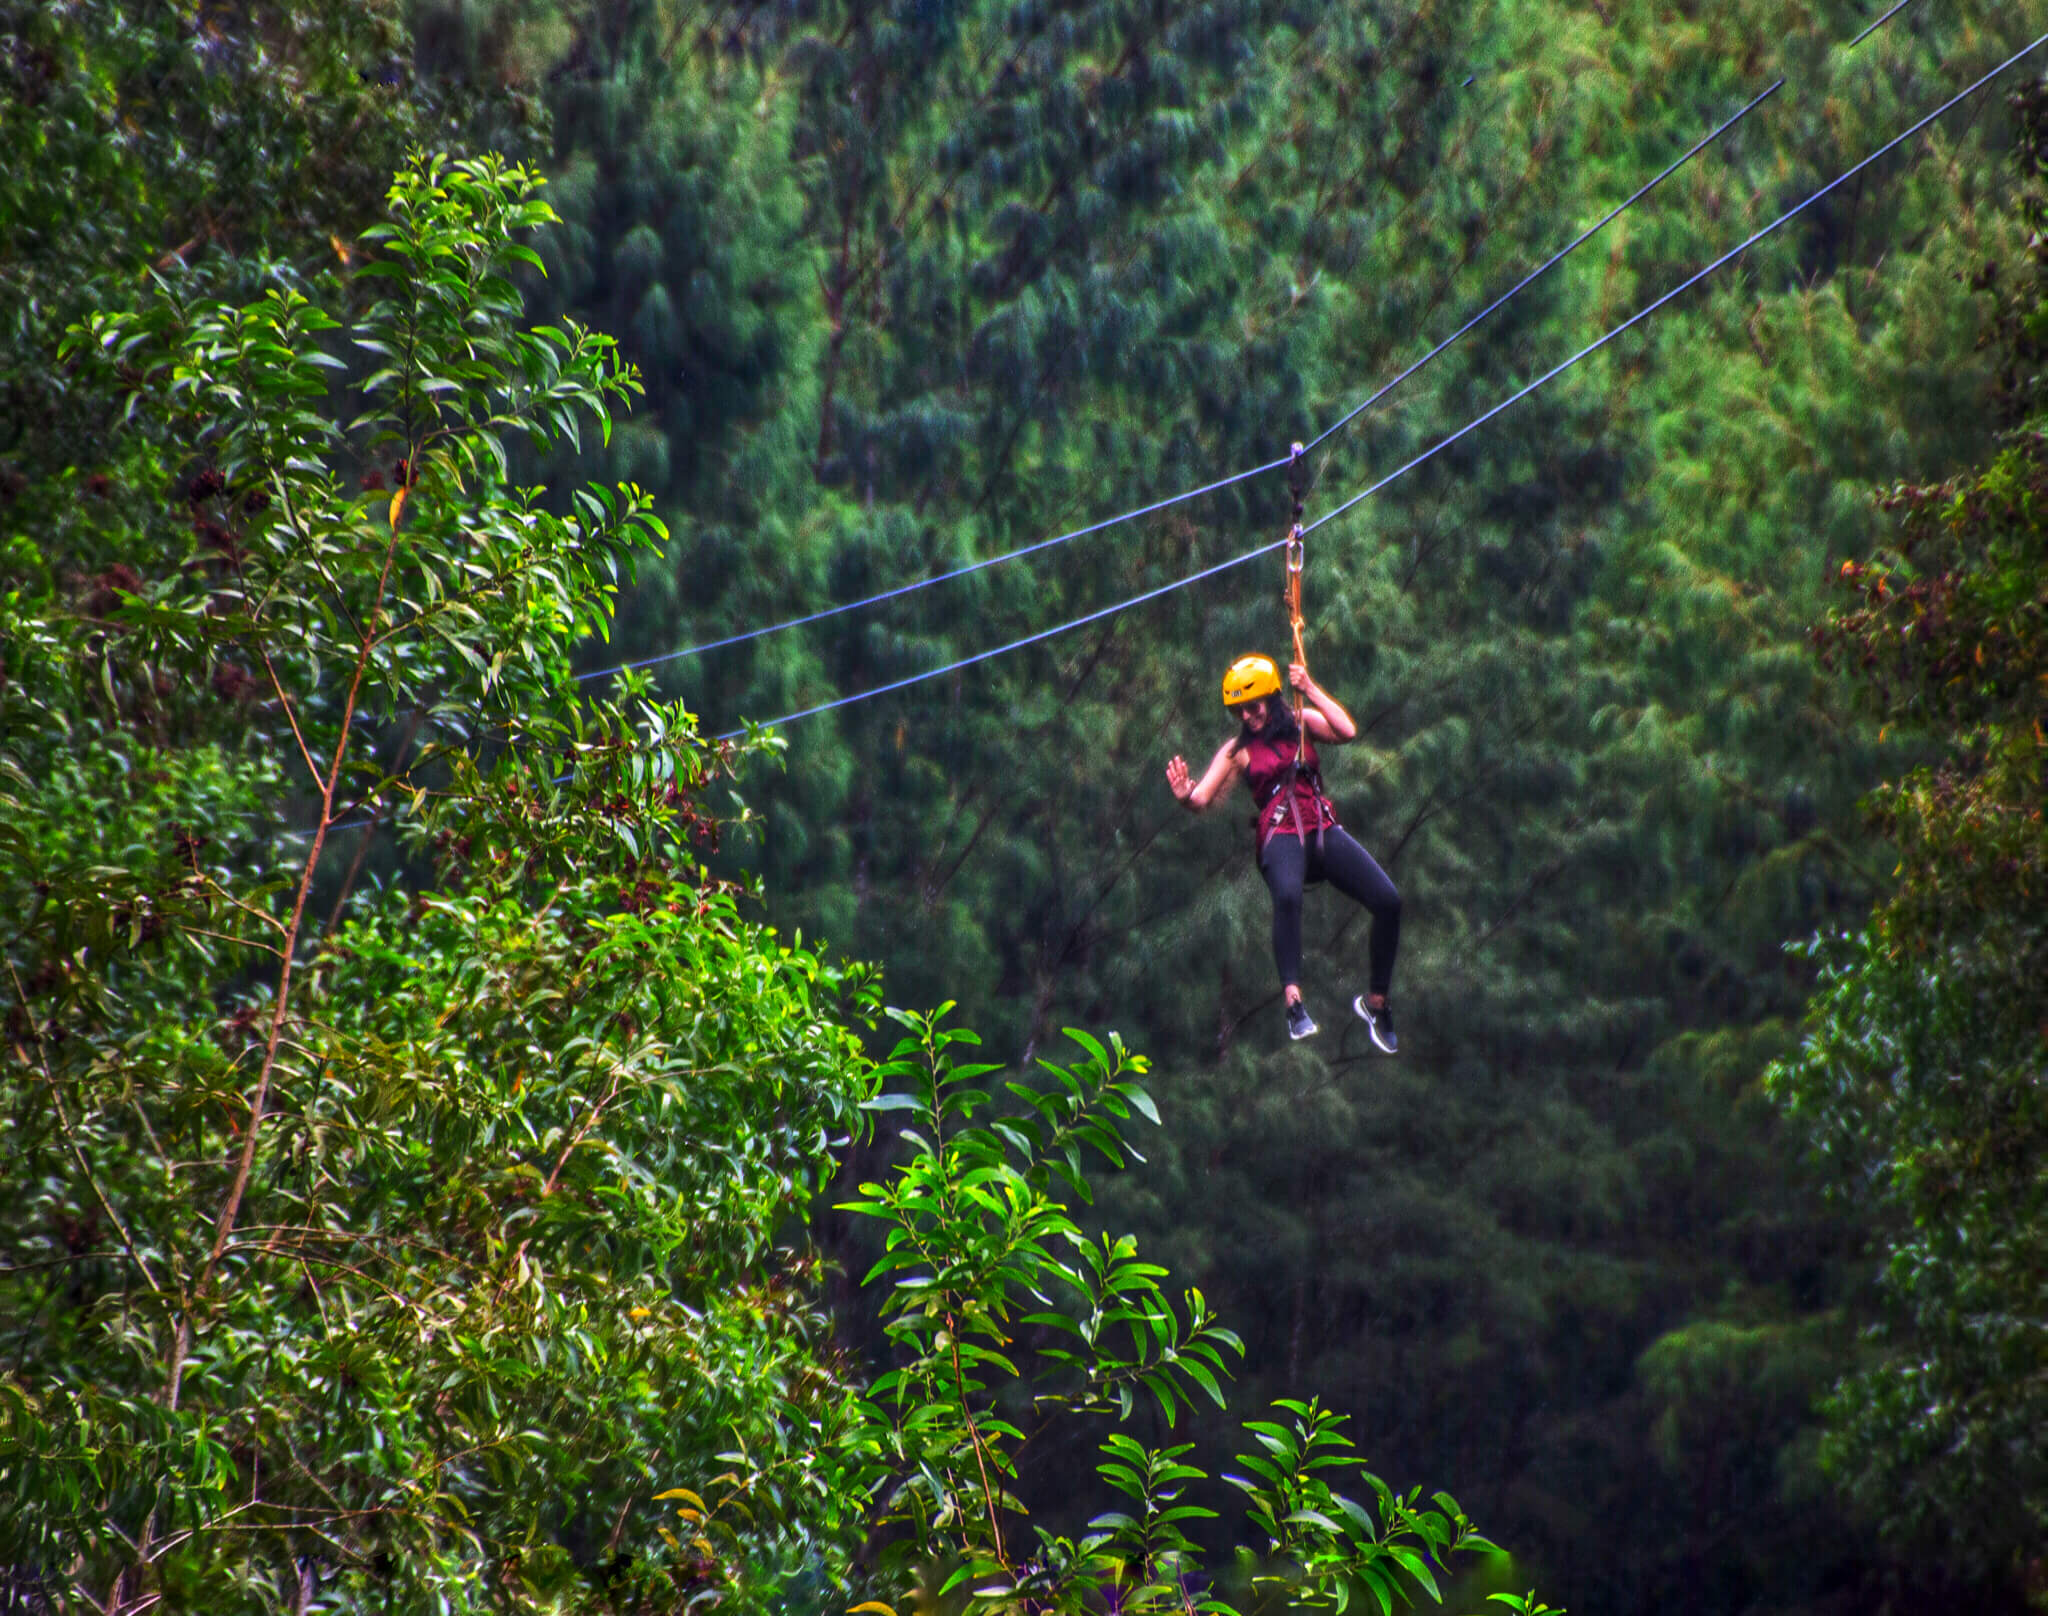 Ziplining over the Mayon Volcano in Legazpi, Philippines